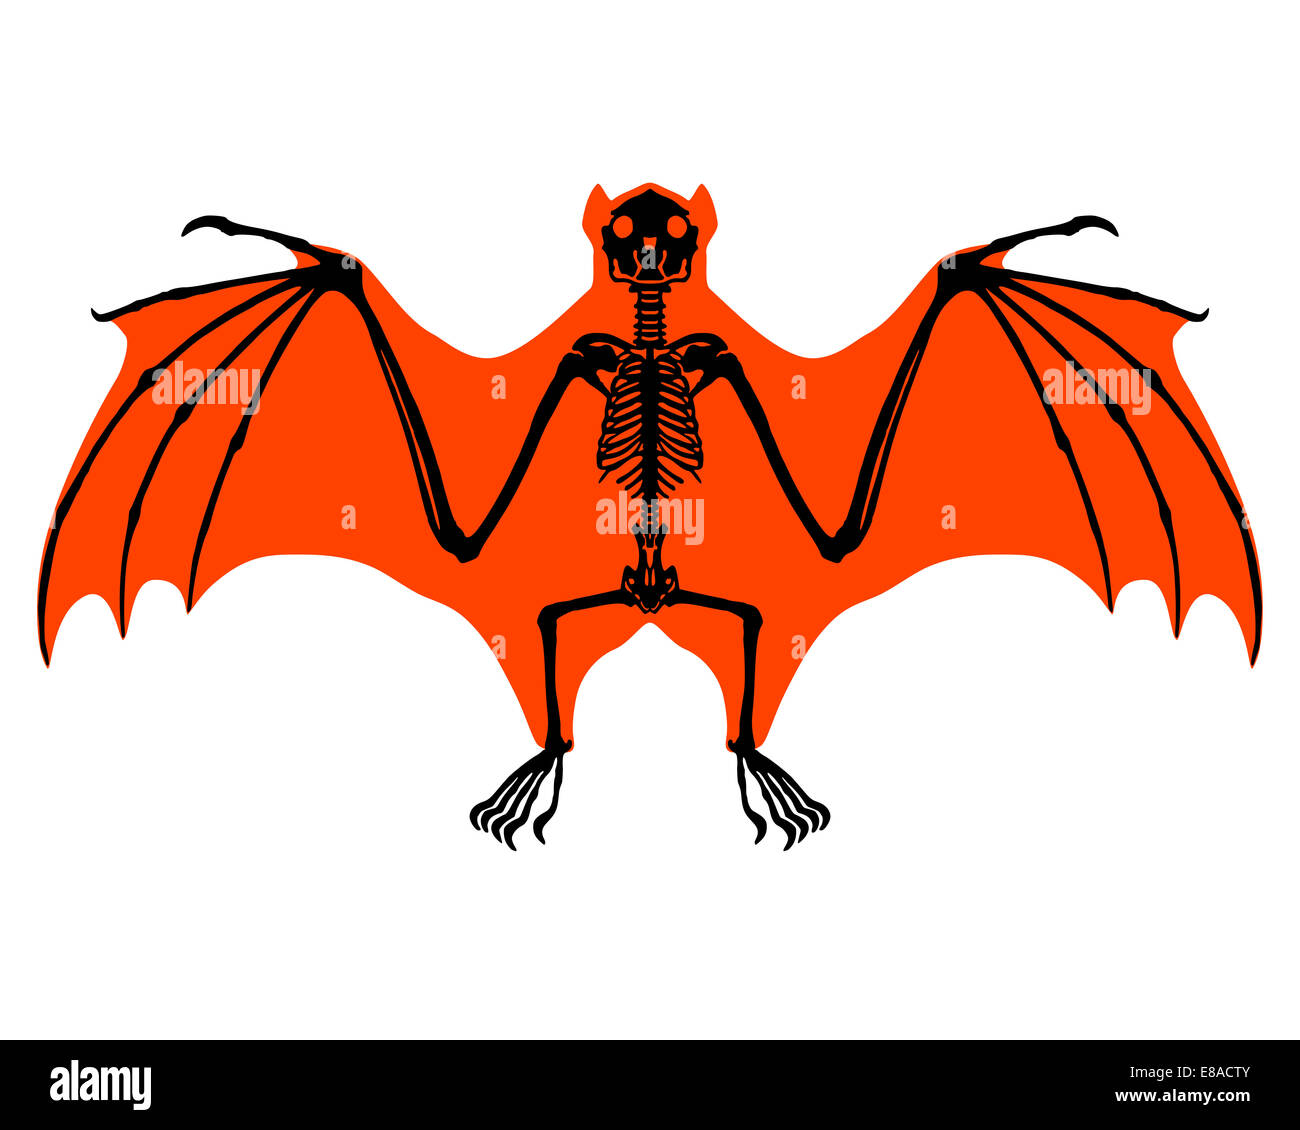 Bat Wing Anatomy Cut Out Stock Images & Pictures - Alamy